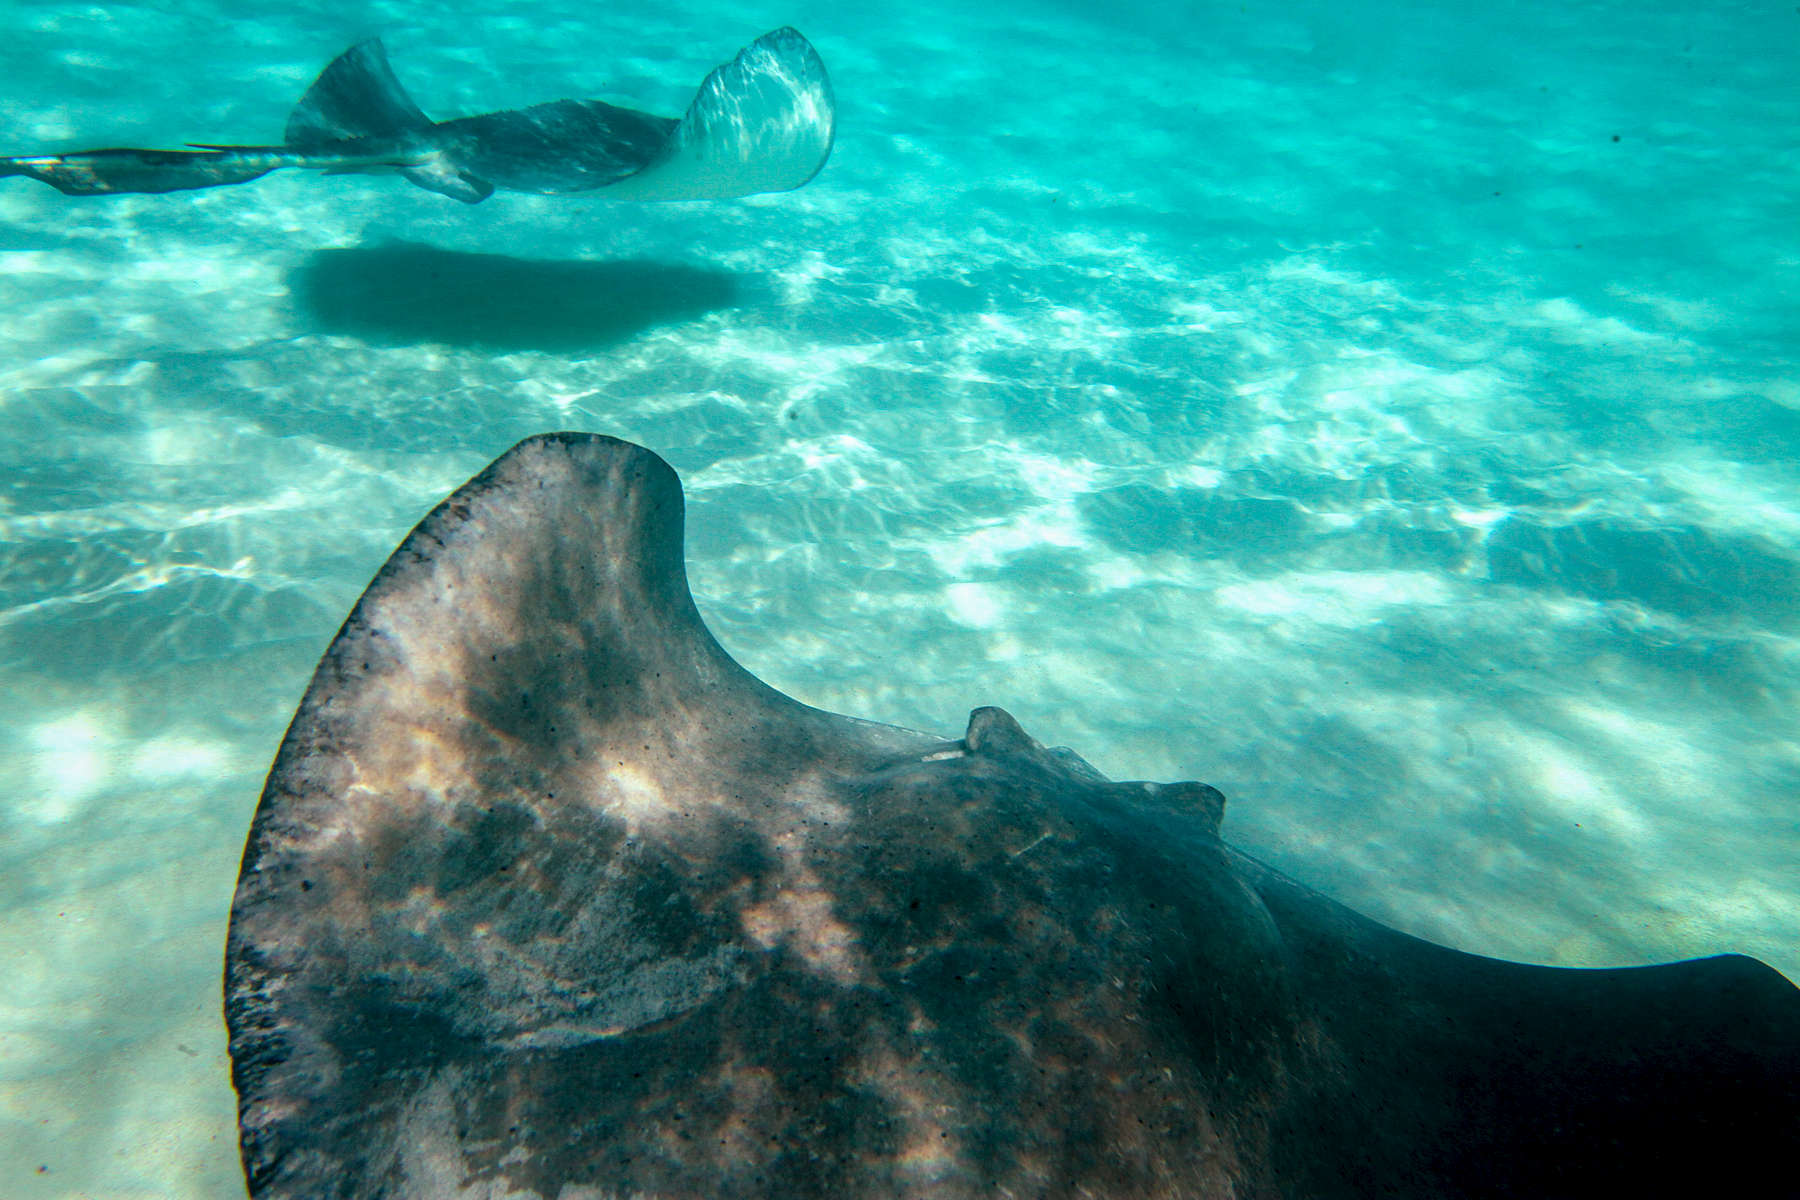 Grand Cayman Island stingrays. Underwater, travel photography by Perry Reichanadter, Wayne Images.